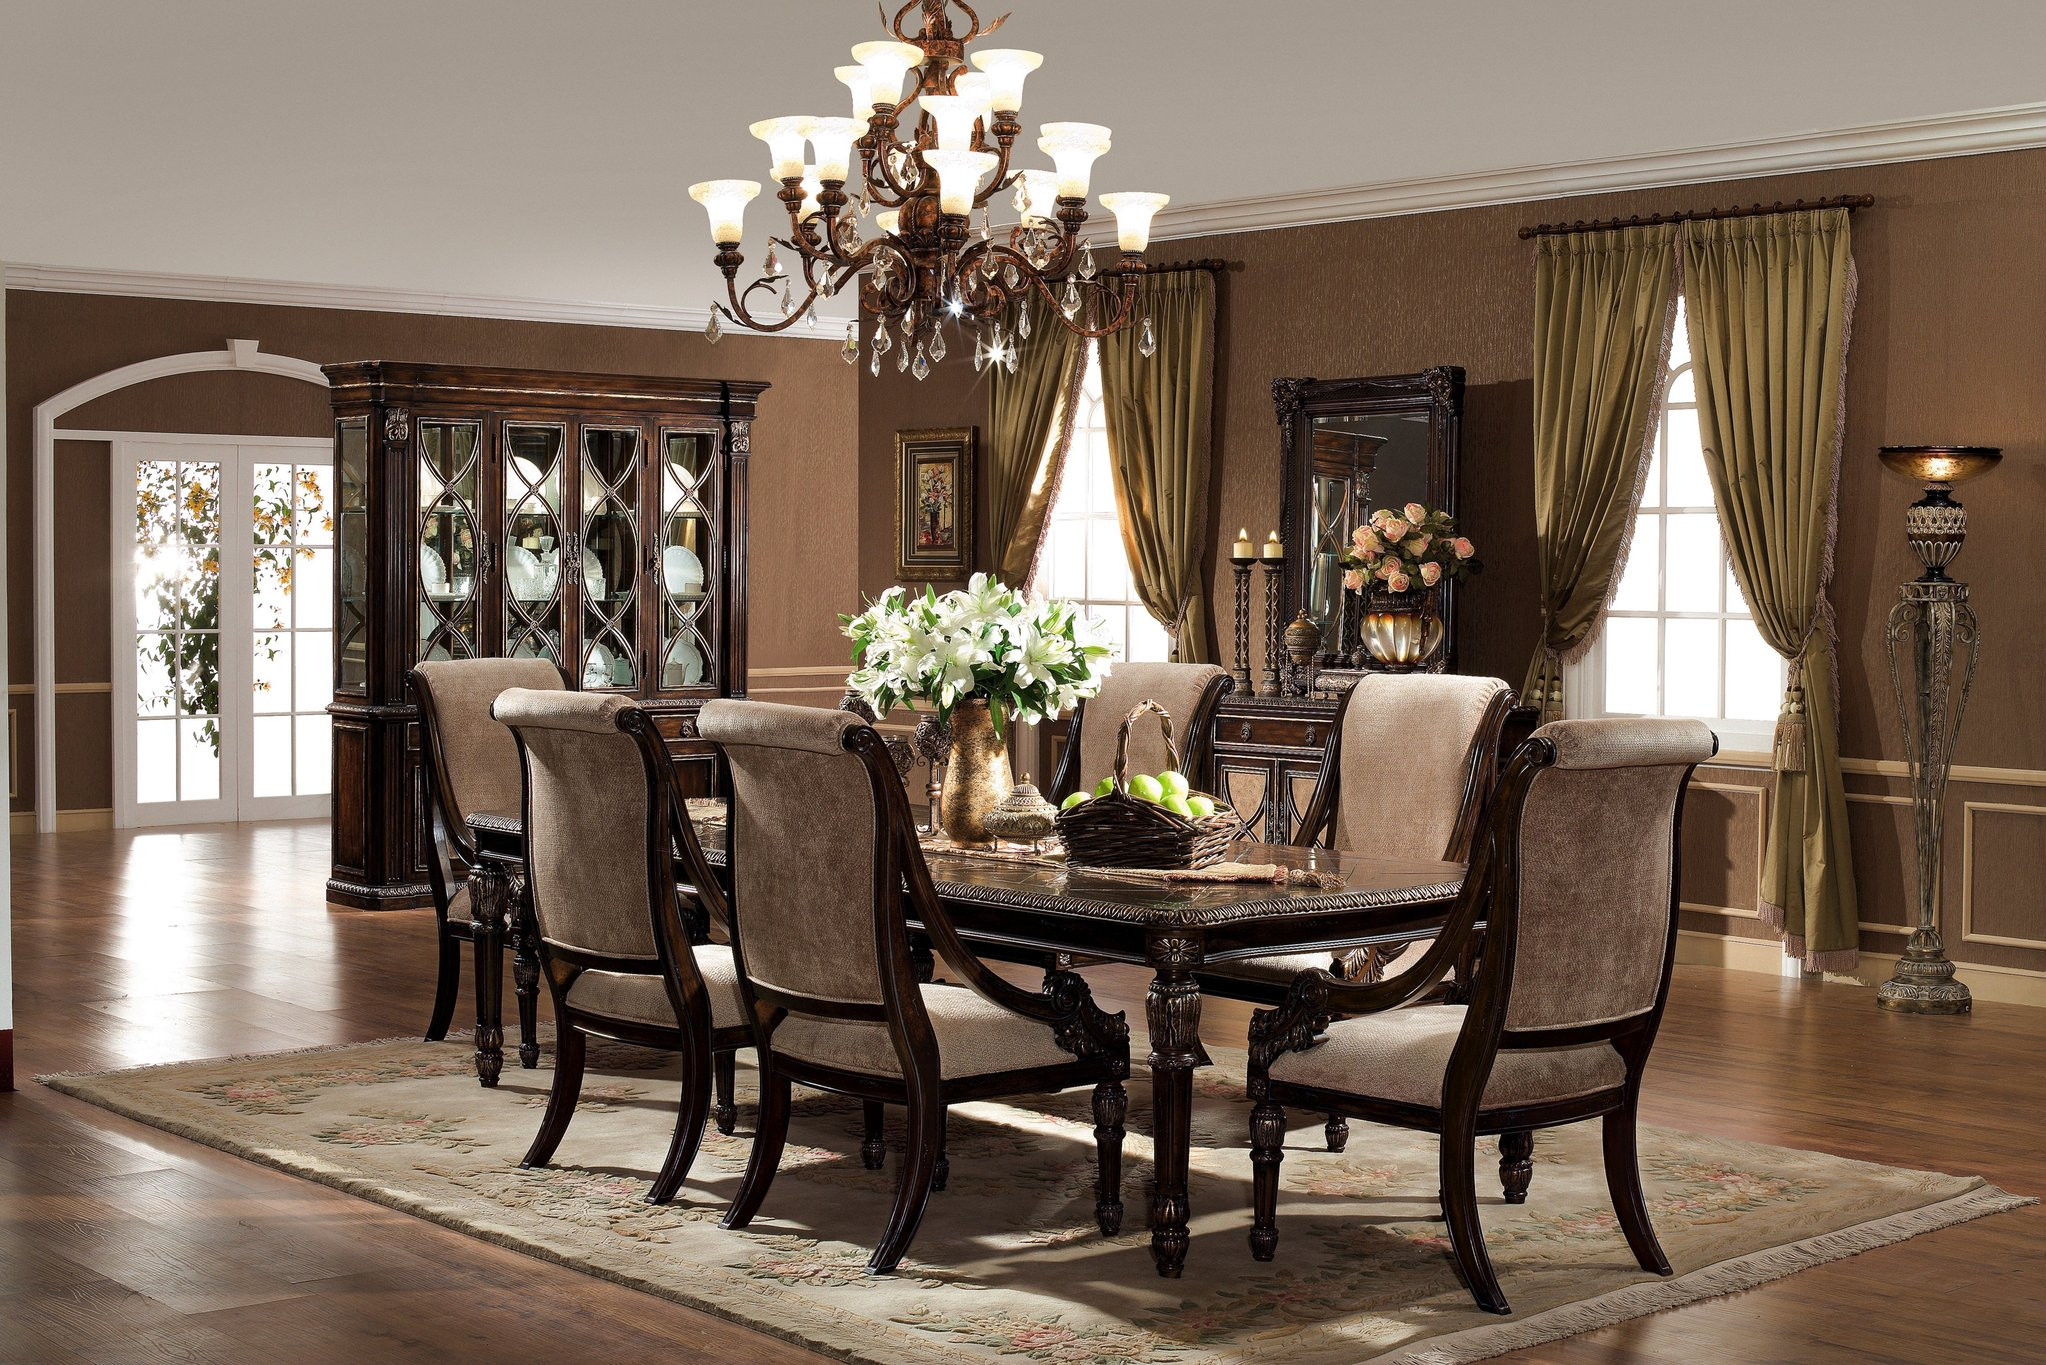 Best ideas about Dining Room Furniture . Save or Pin The Le Palais Formal Dining Room Collection dining room Now.